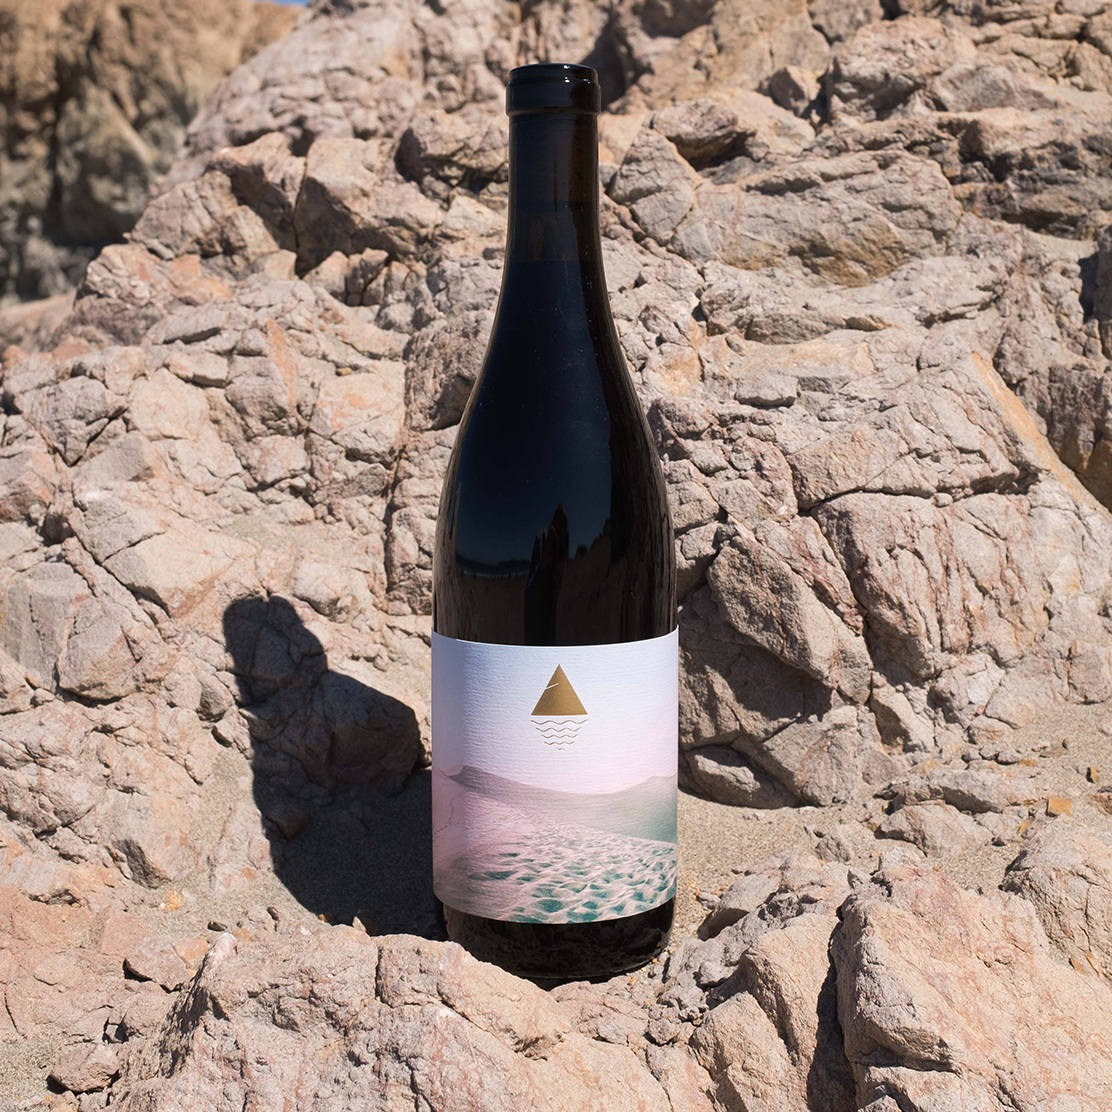 mountain-tides-wine0-2017-contra-costa-bottle-california-wine.jpg